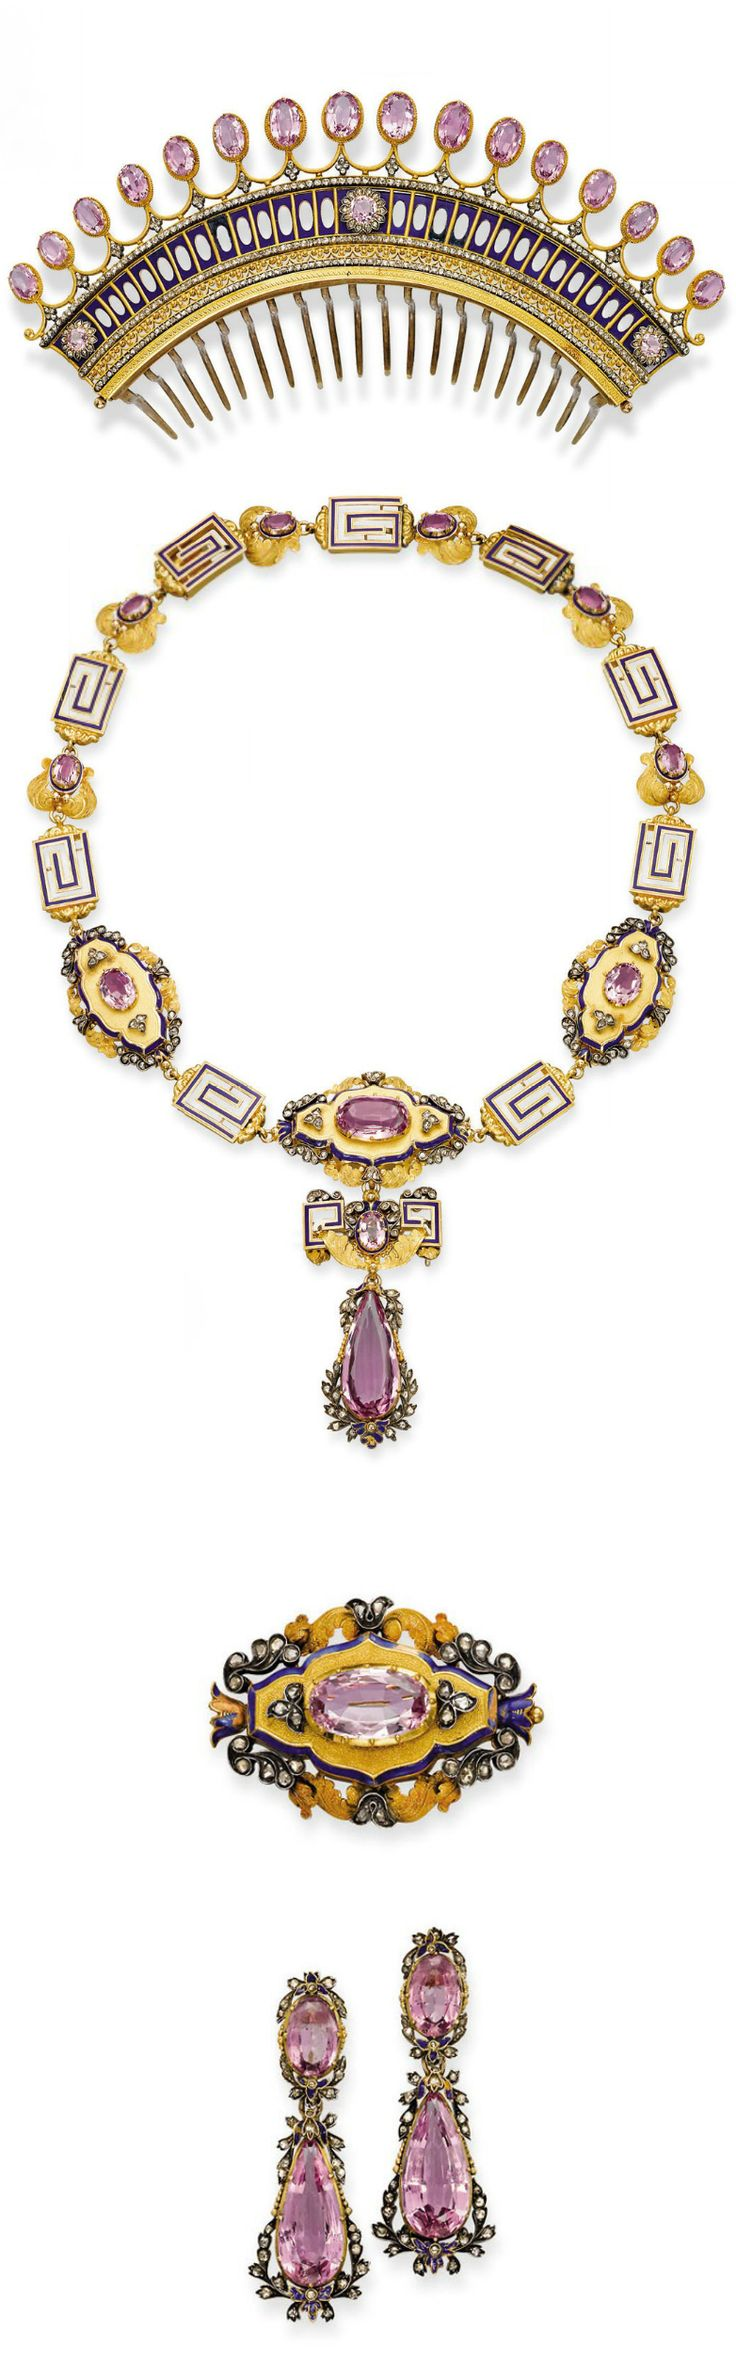 AN ANTIQUE PINK TOPAZ, ENAMEL, DIAMOND & GOLD PARURE.   Comprising: a comb tiara set with a fringe of oval pink topazes to the openwork gold, blue enamel & diamond decoration; a necklace/choker with removeable links supporting a detachable plaque brooch & topaz pendant; a pair of earrings with detachable pendants; & a brooch with pendant hoop, all of neo-classical & foliate design, mounted in silver & gold, circa 1840. [brooch and earrings blown up for detail]